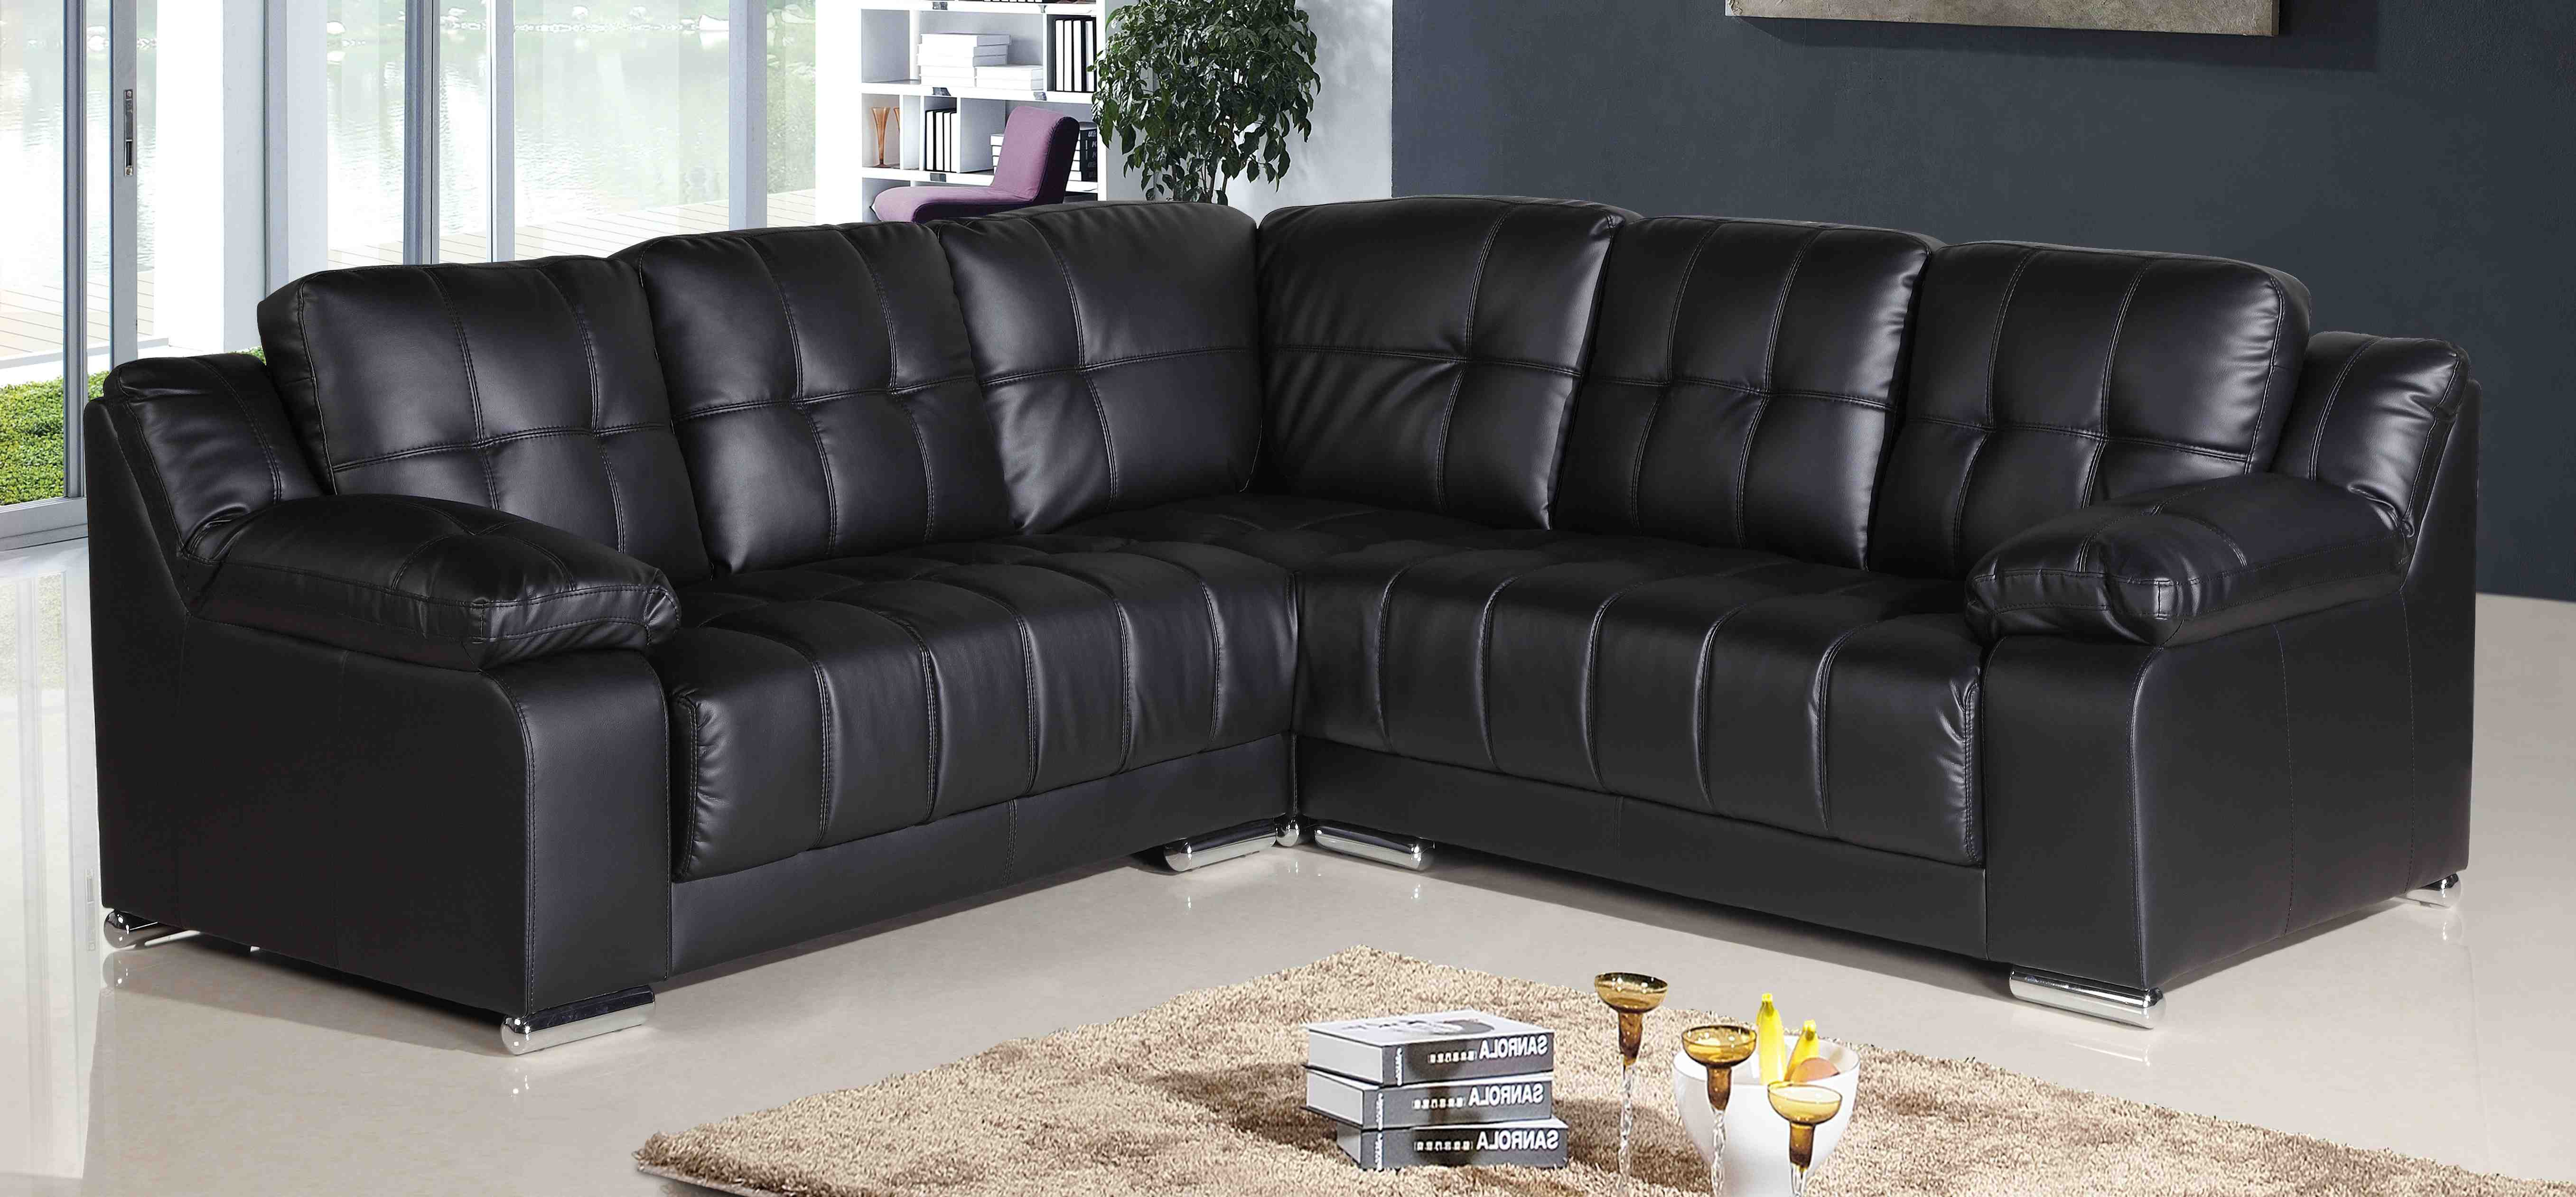 fantastic sectional fabric sofa picture-Incredible Sectional Fabric sofa Decoration